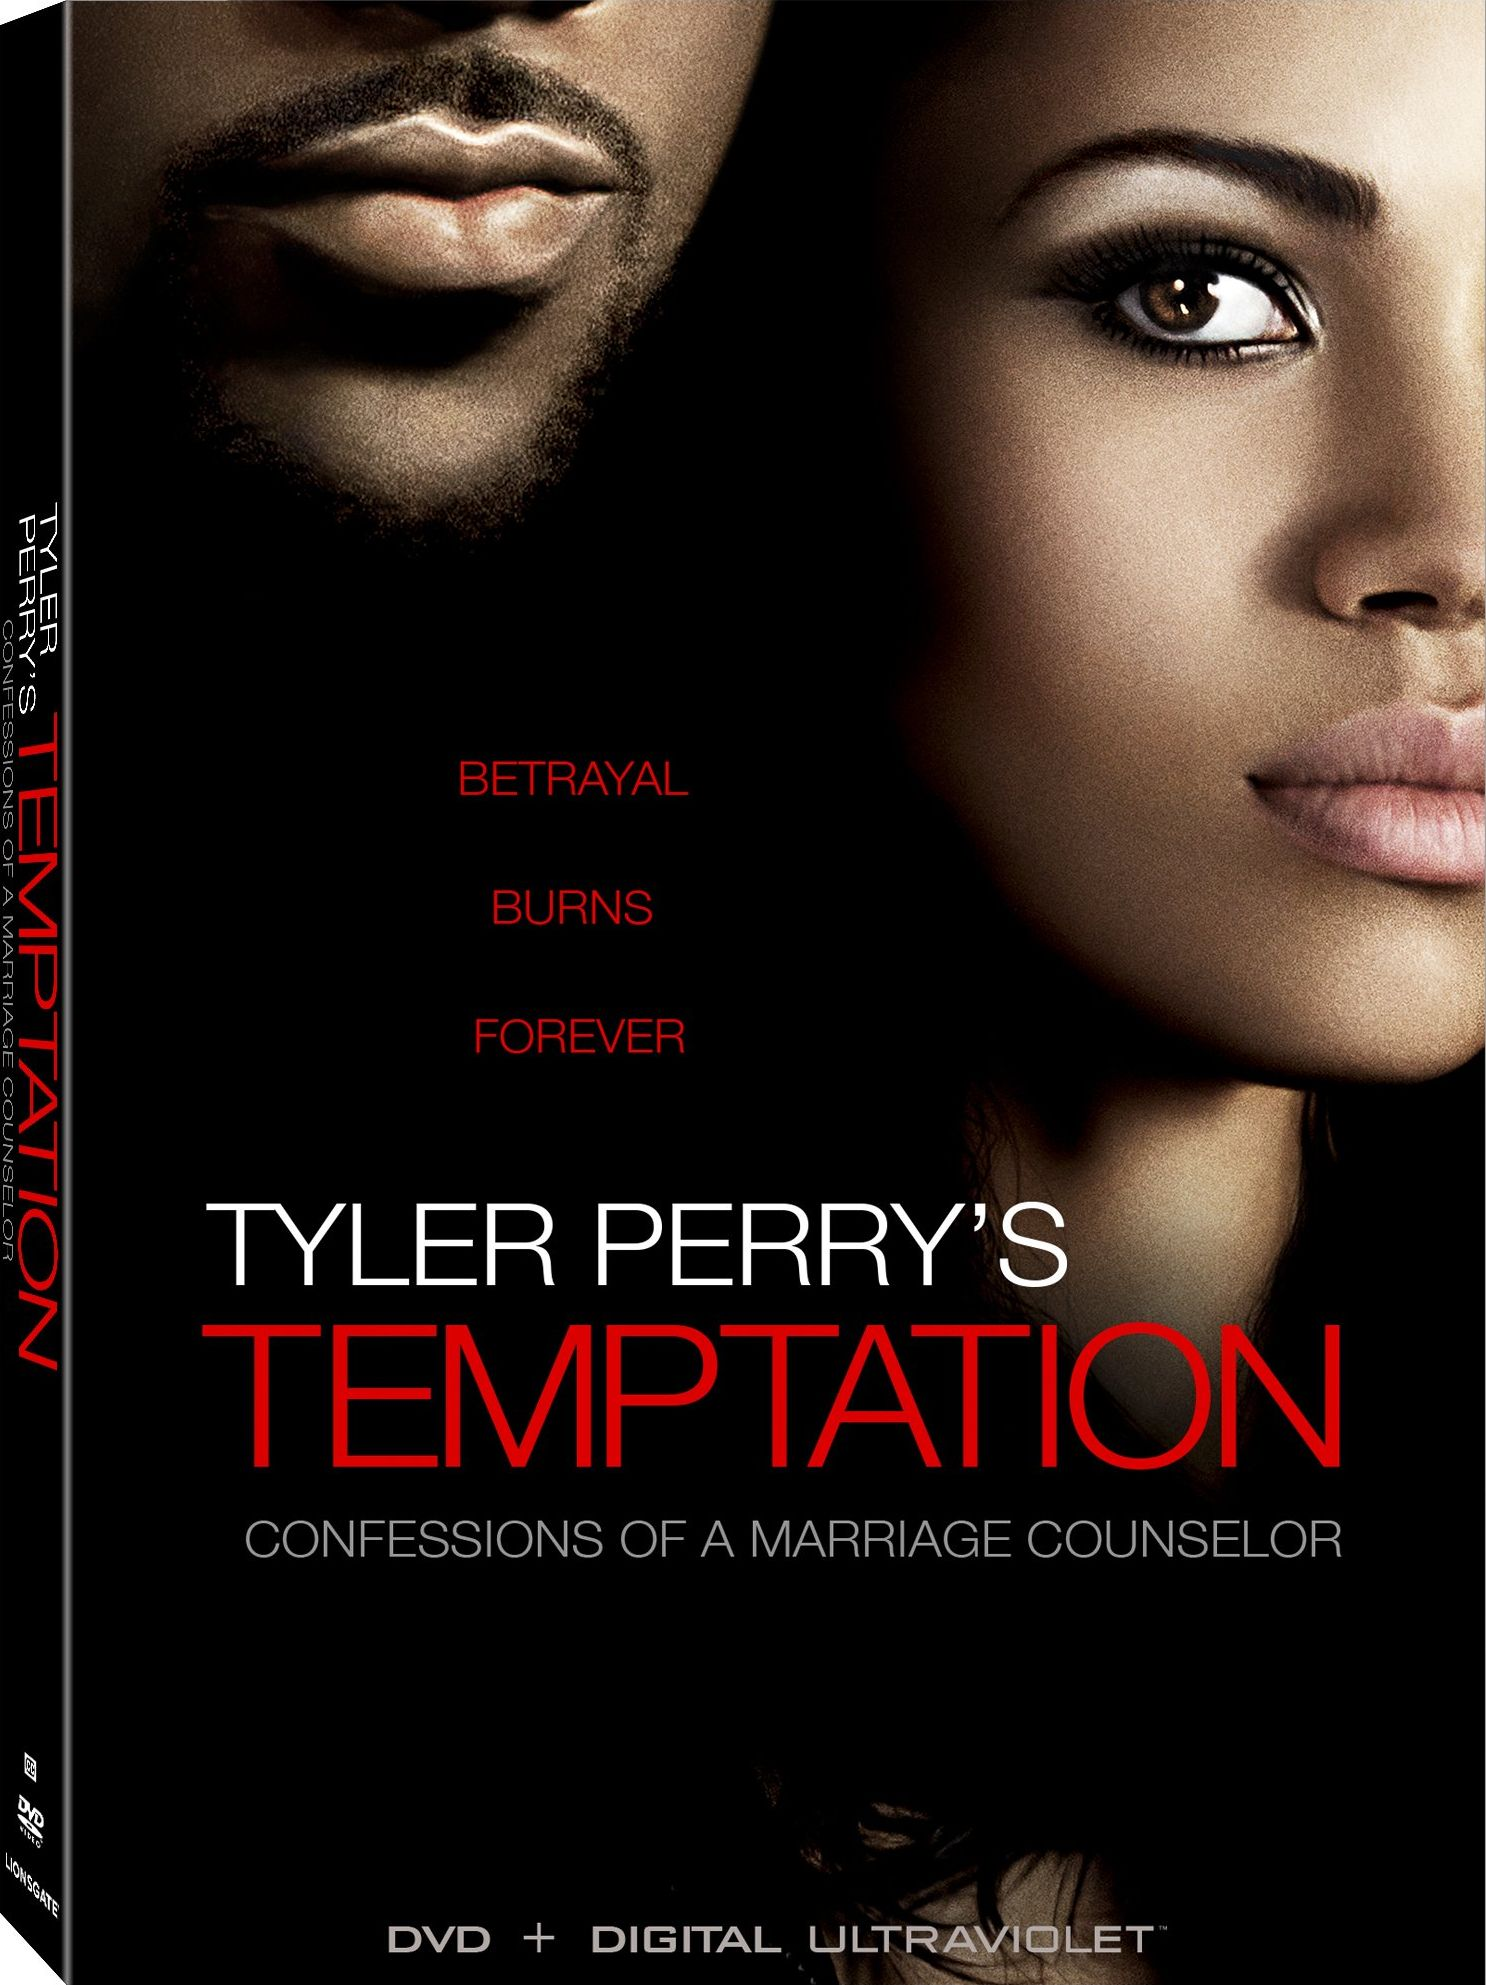 Tyler Perry's - Temptation Movie DVD